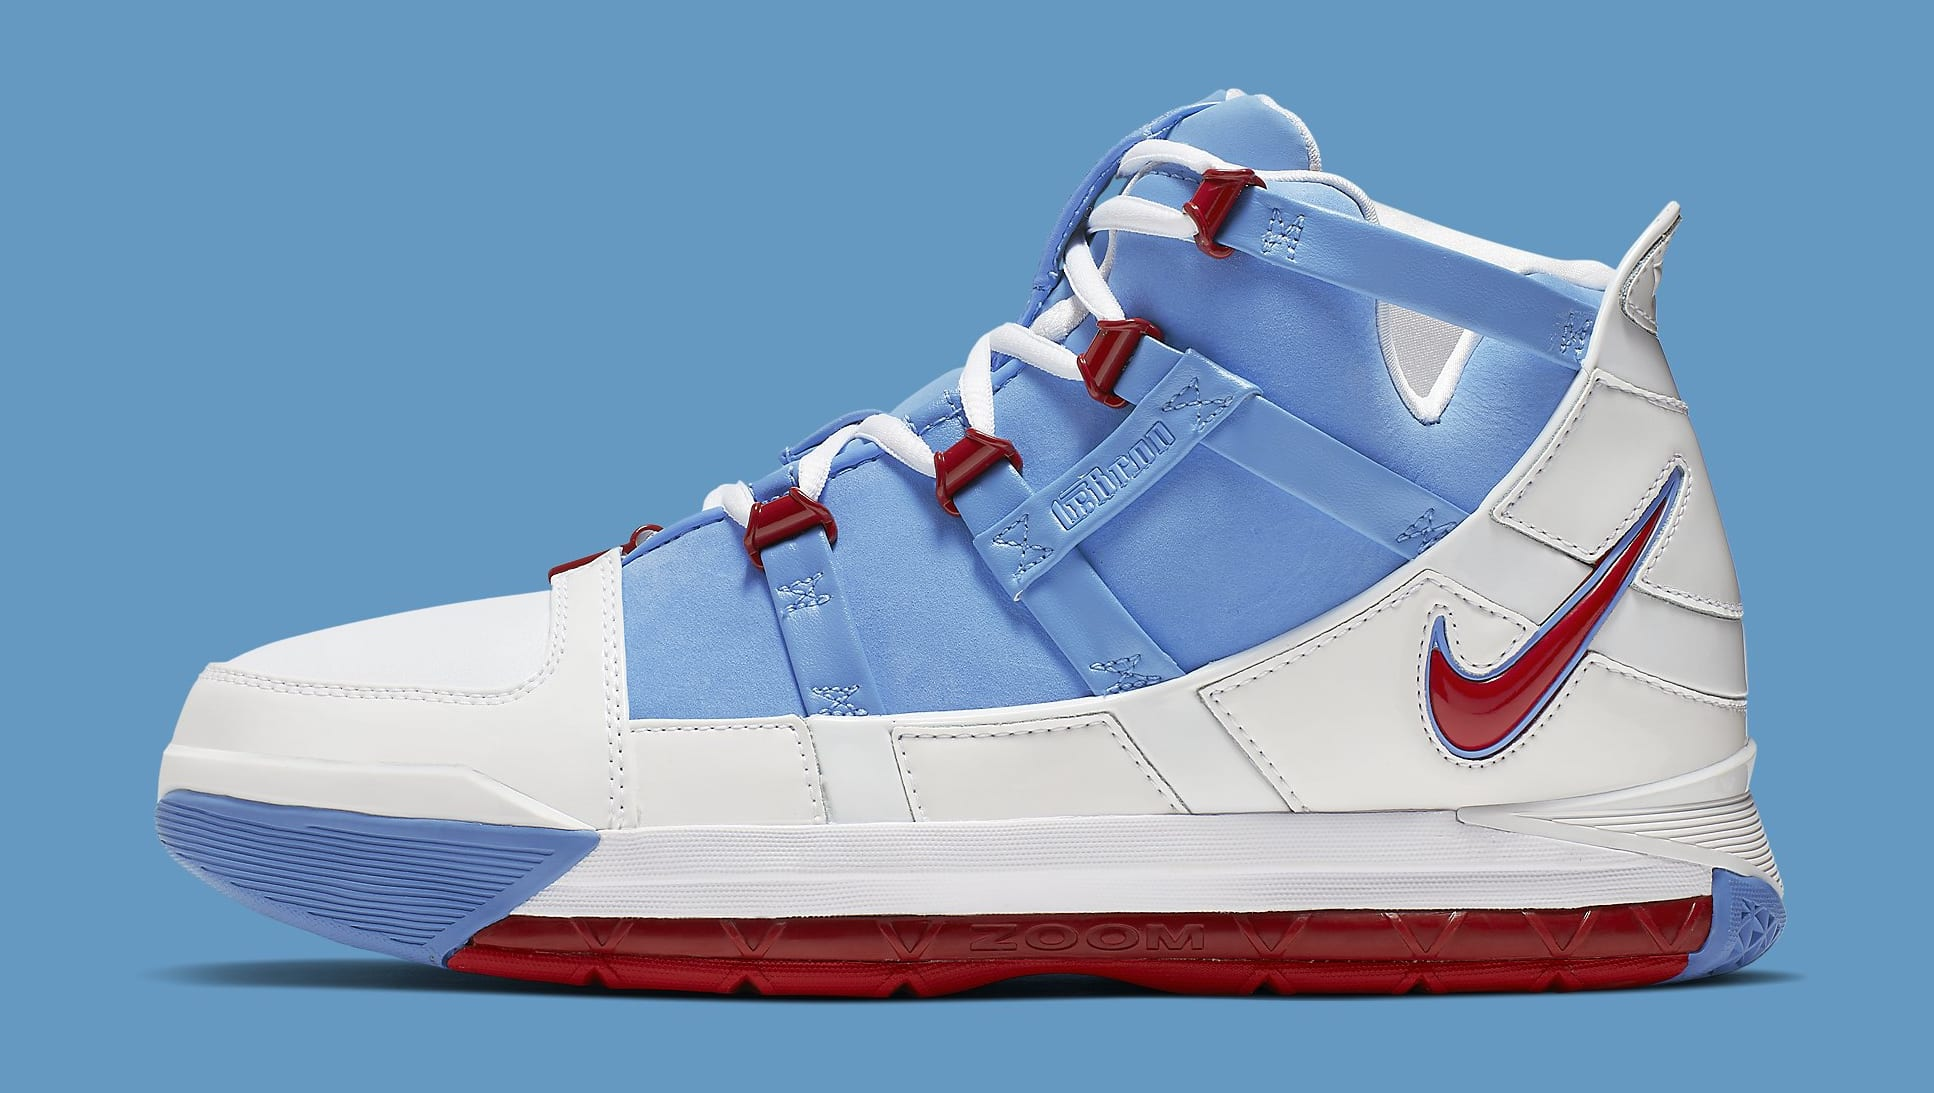 Nike Zoom LeBron 3 QS 'Houston All-Star' AO2434-400 Lateral